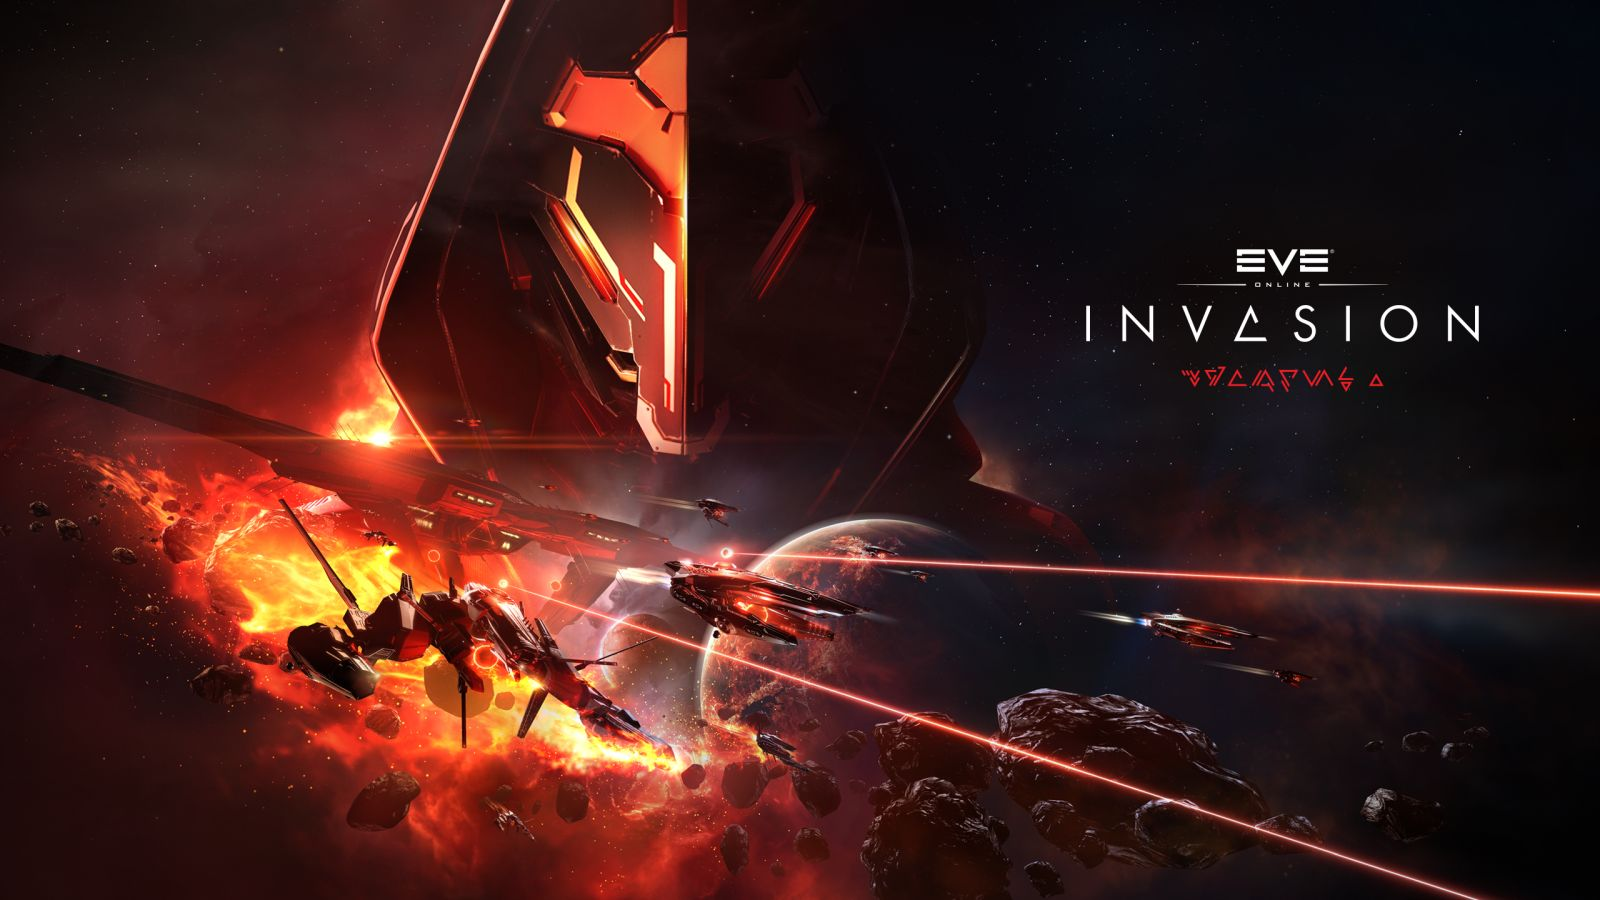 """EVE Online"" Players Taken Off-Guard By Surprise Alien Attack"